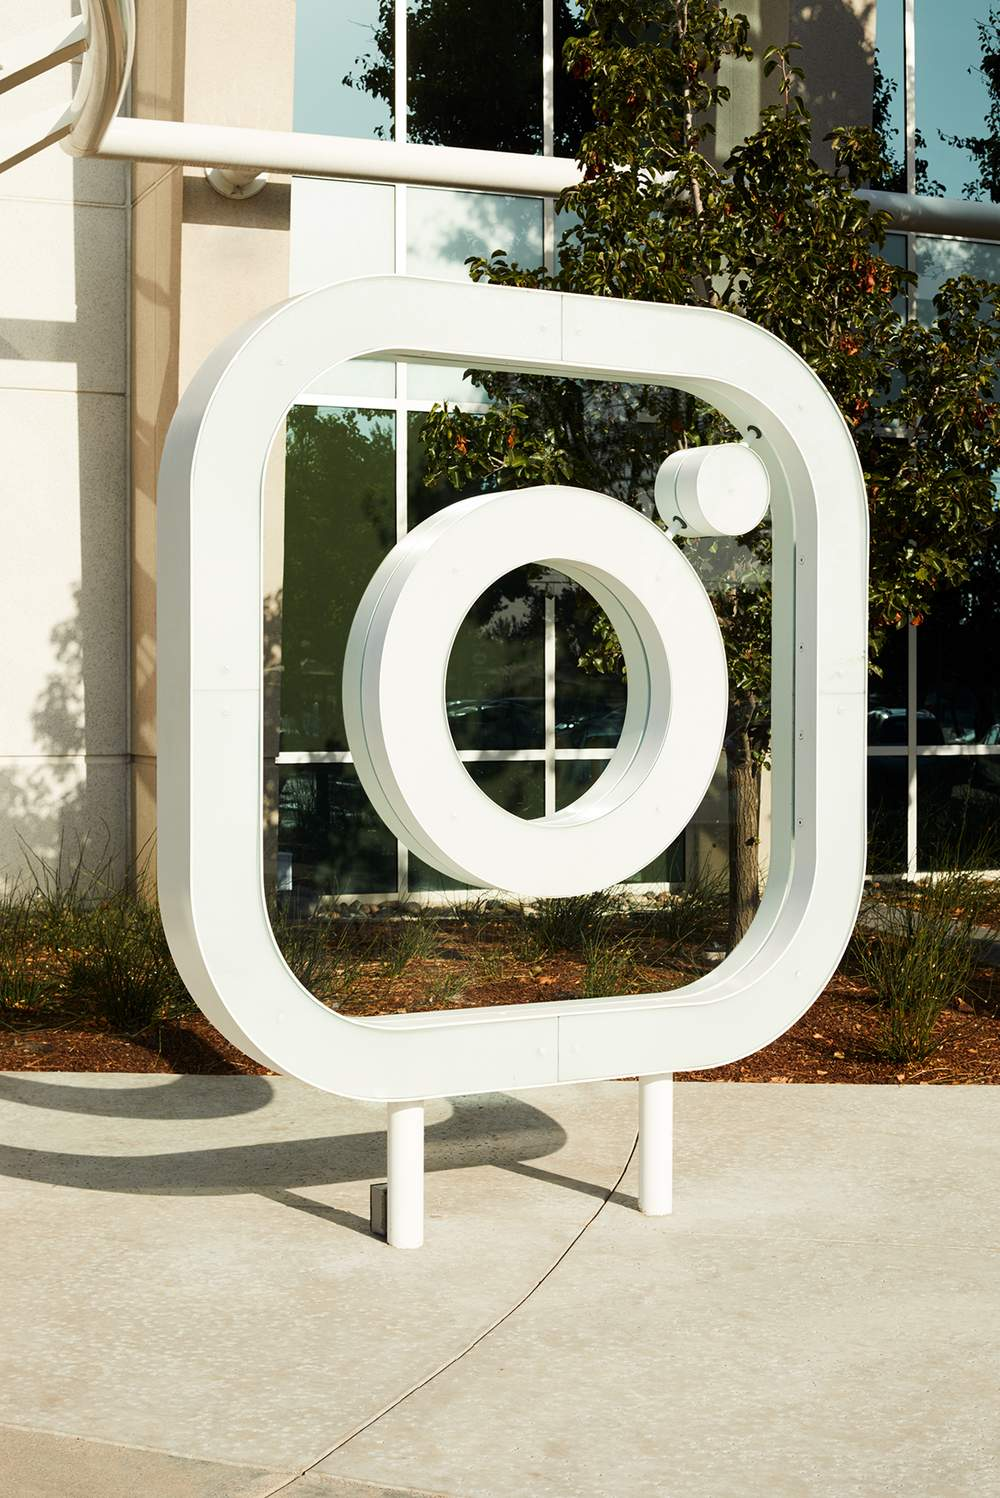 The Many Stories Of Instagram's Billionaire Founder | The